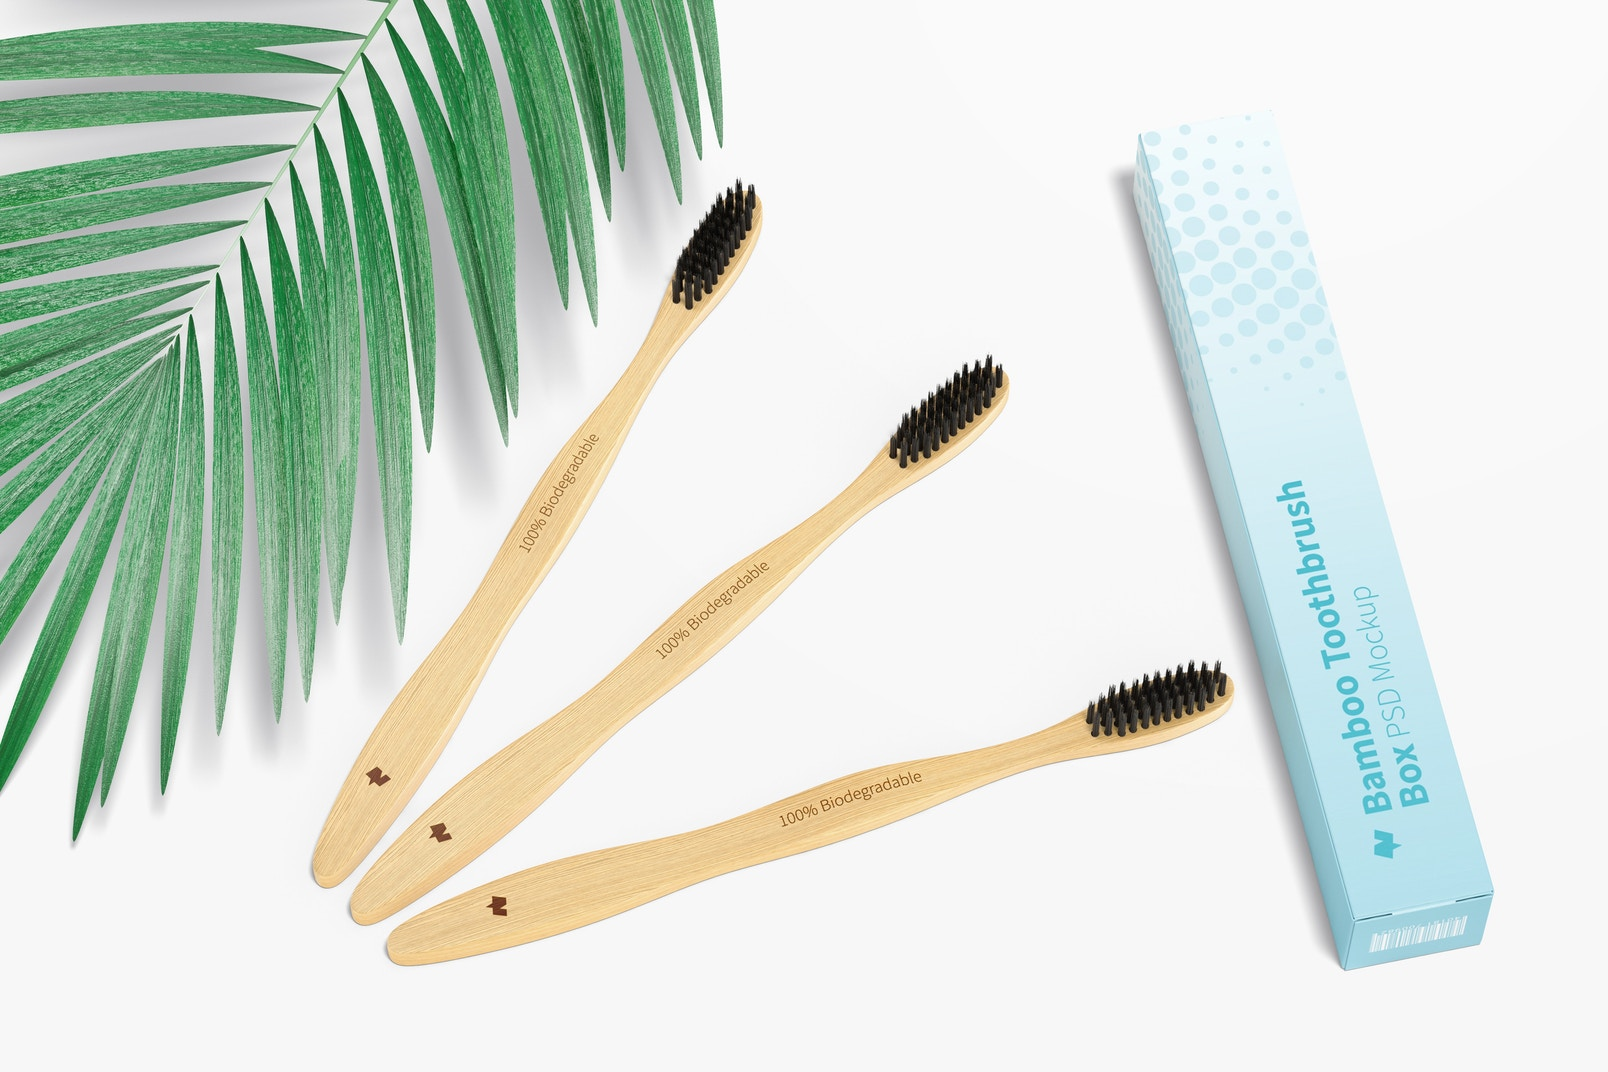 Bamboo Toothbrushes with Box Mockup